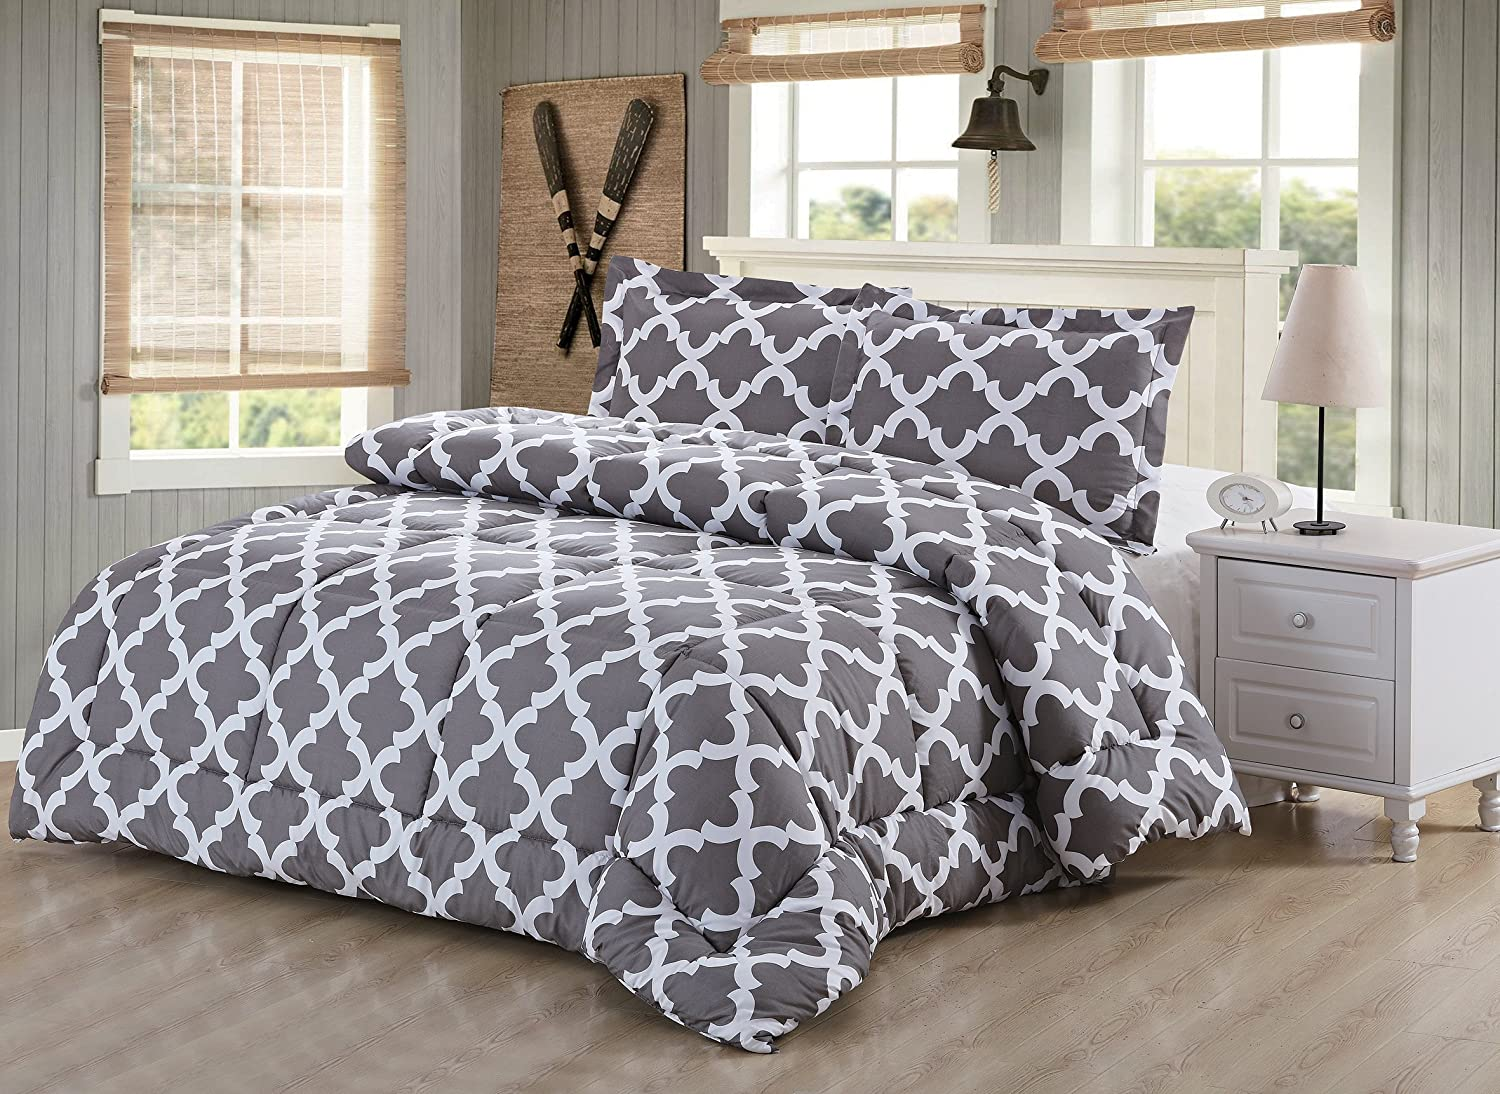 Printed Comforter Set (Grey, Twin) with 2 Pillow Sham - Luxurious Soft Brushed Microfiber - Goose Down Alternative Comforter